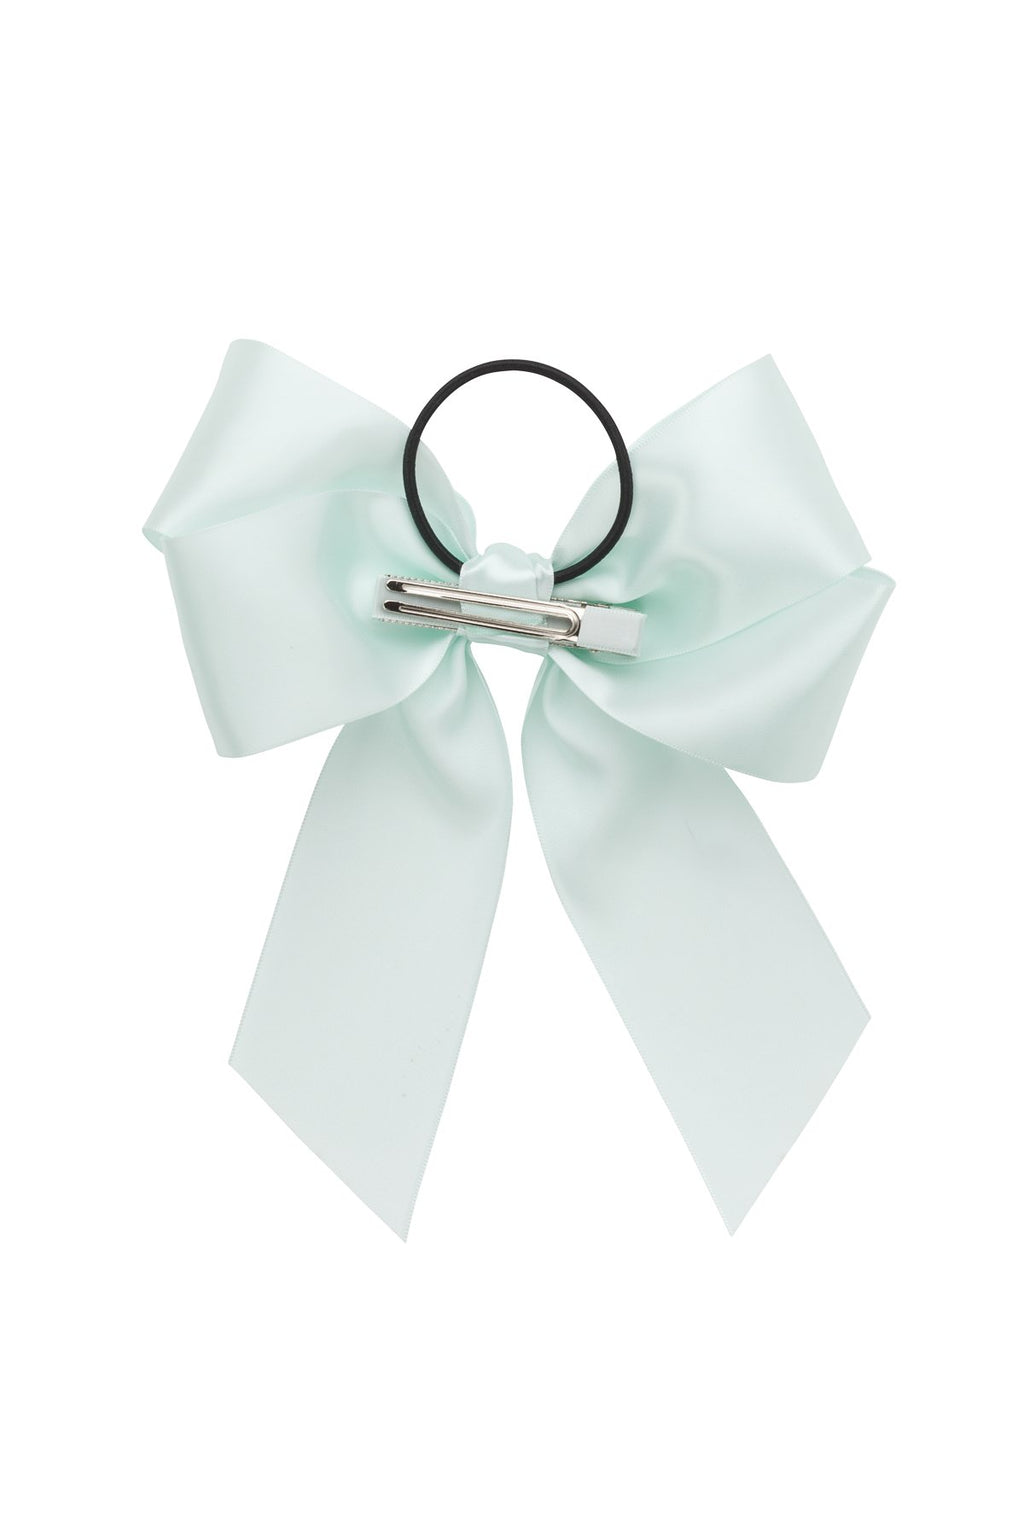 Oversized Bow Pony/Clip  - Ice Mint - PROJECT 6, modest fashion